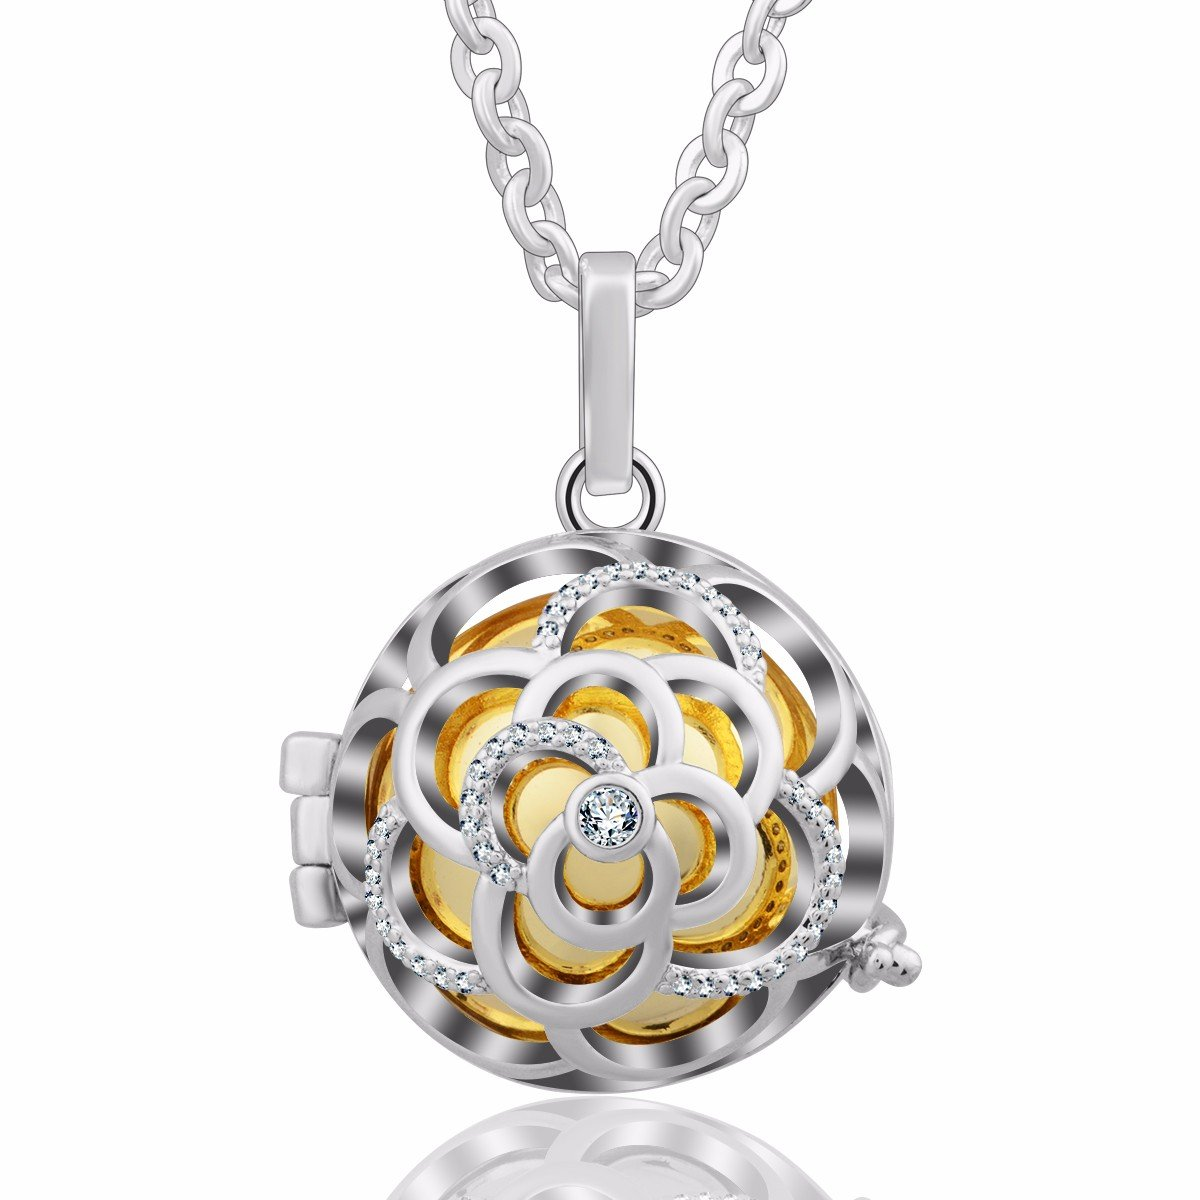 Eudora Harmony Bola CZ Zircon Vintage Angel Chime Pendant 20mm Musical Prayer Bell 30 Necklace White